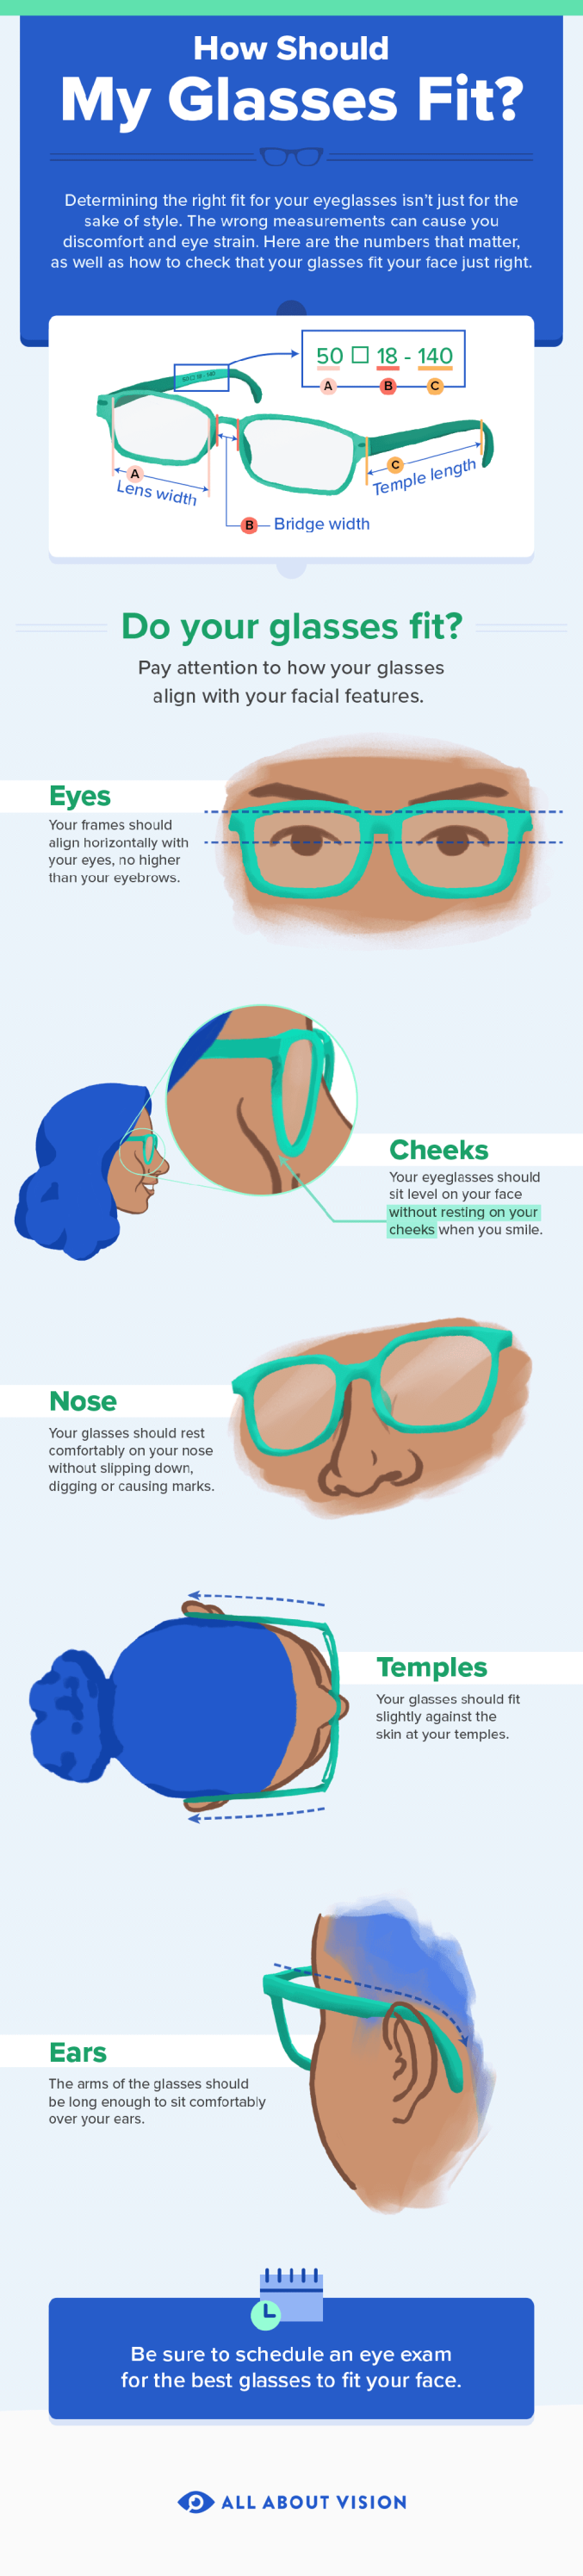 Infographic: How Should My Glasses Fit?